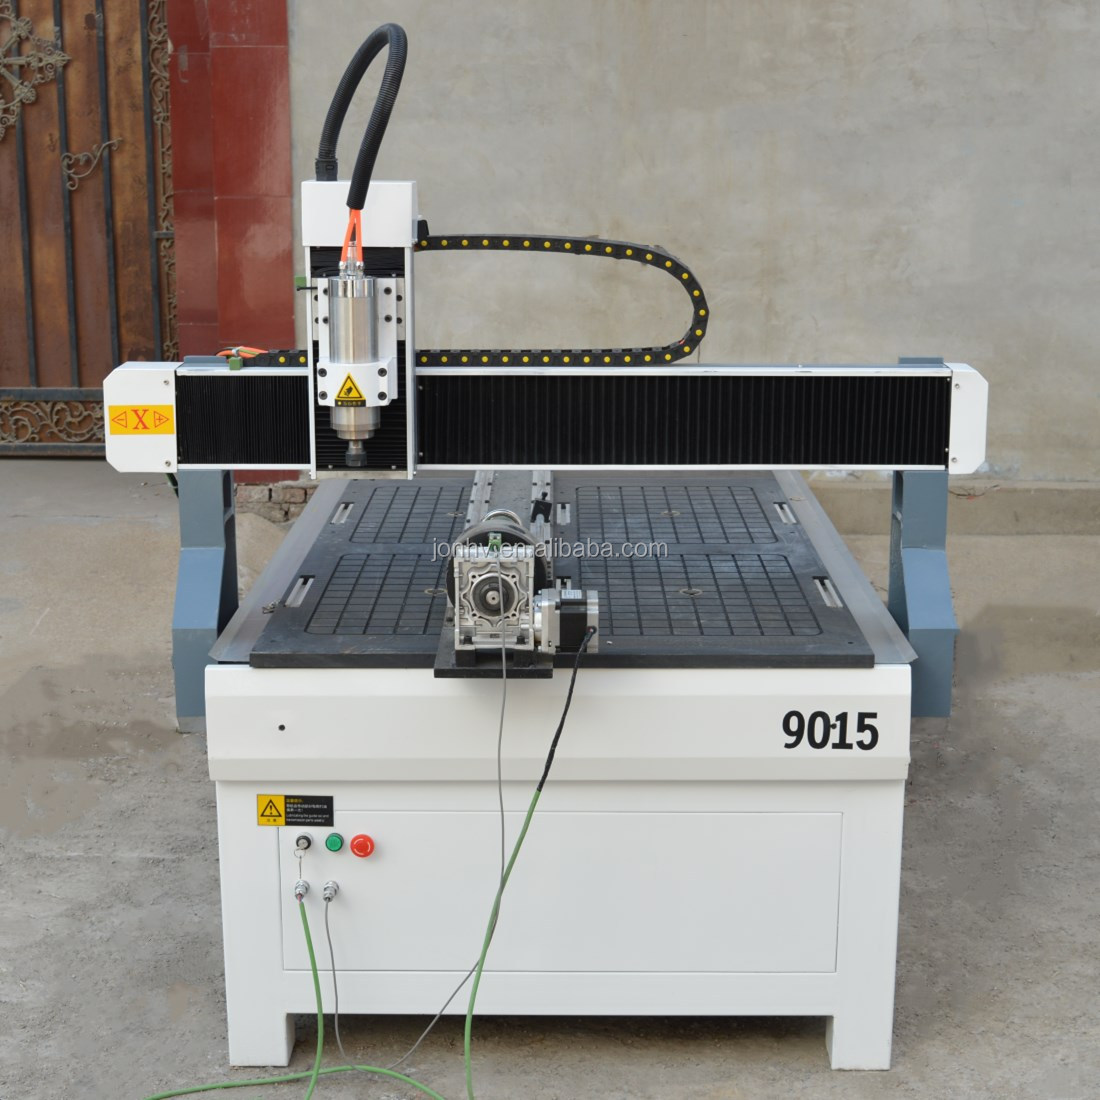 Manufacturer Supply Wood CNC Router Engraving Machine for Woodworking Furniture